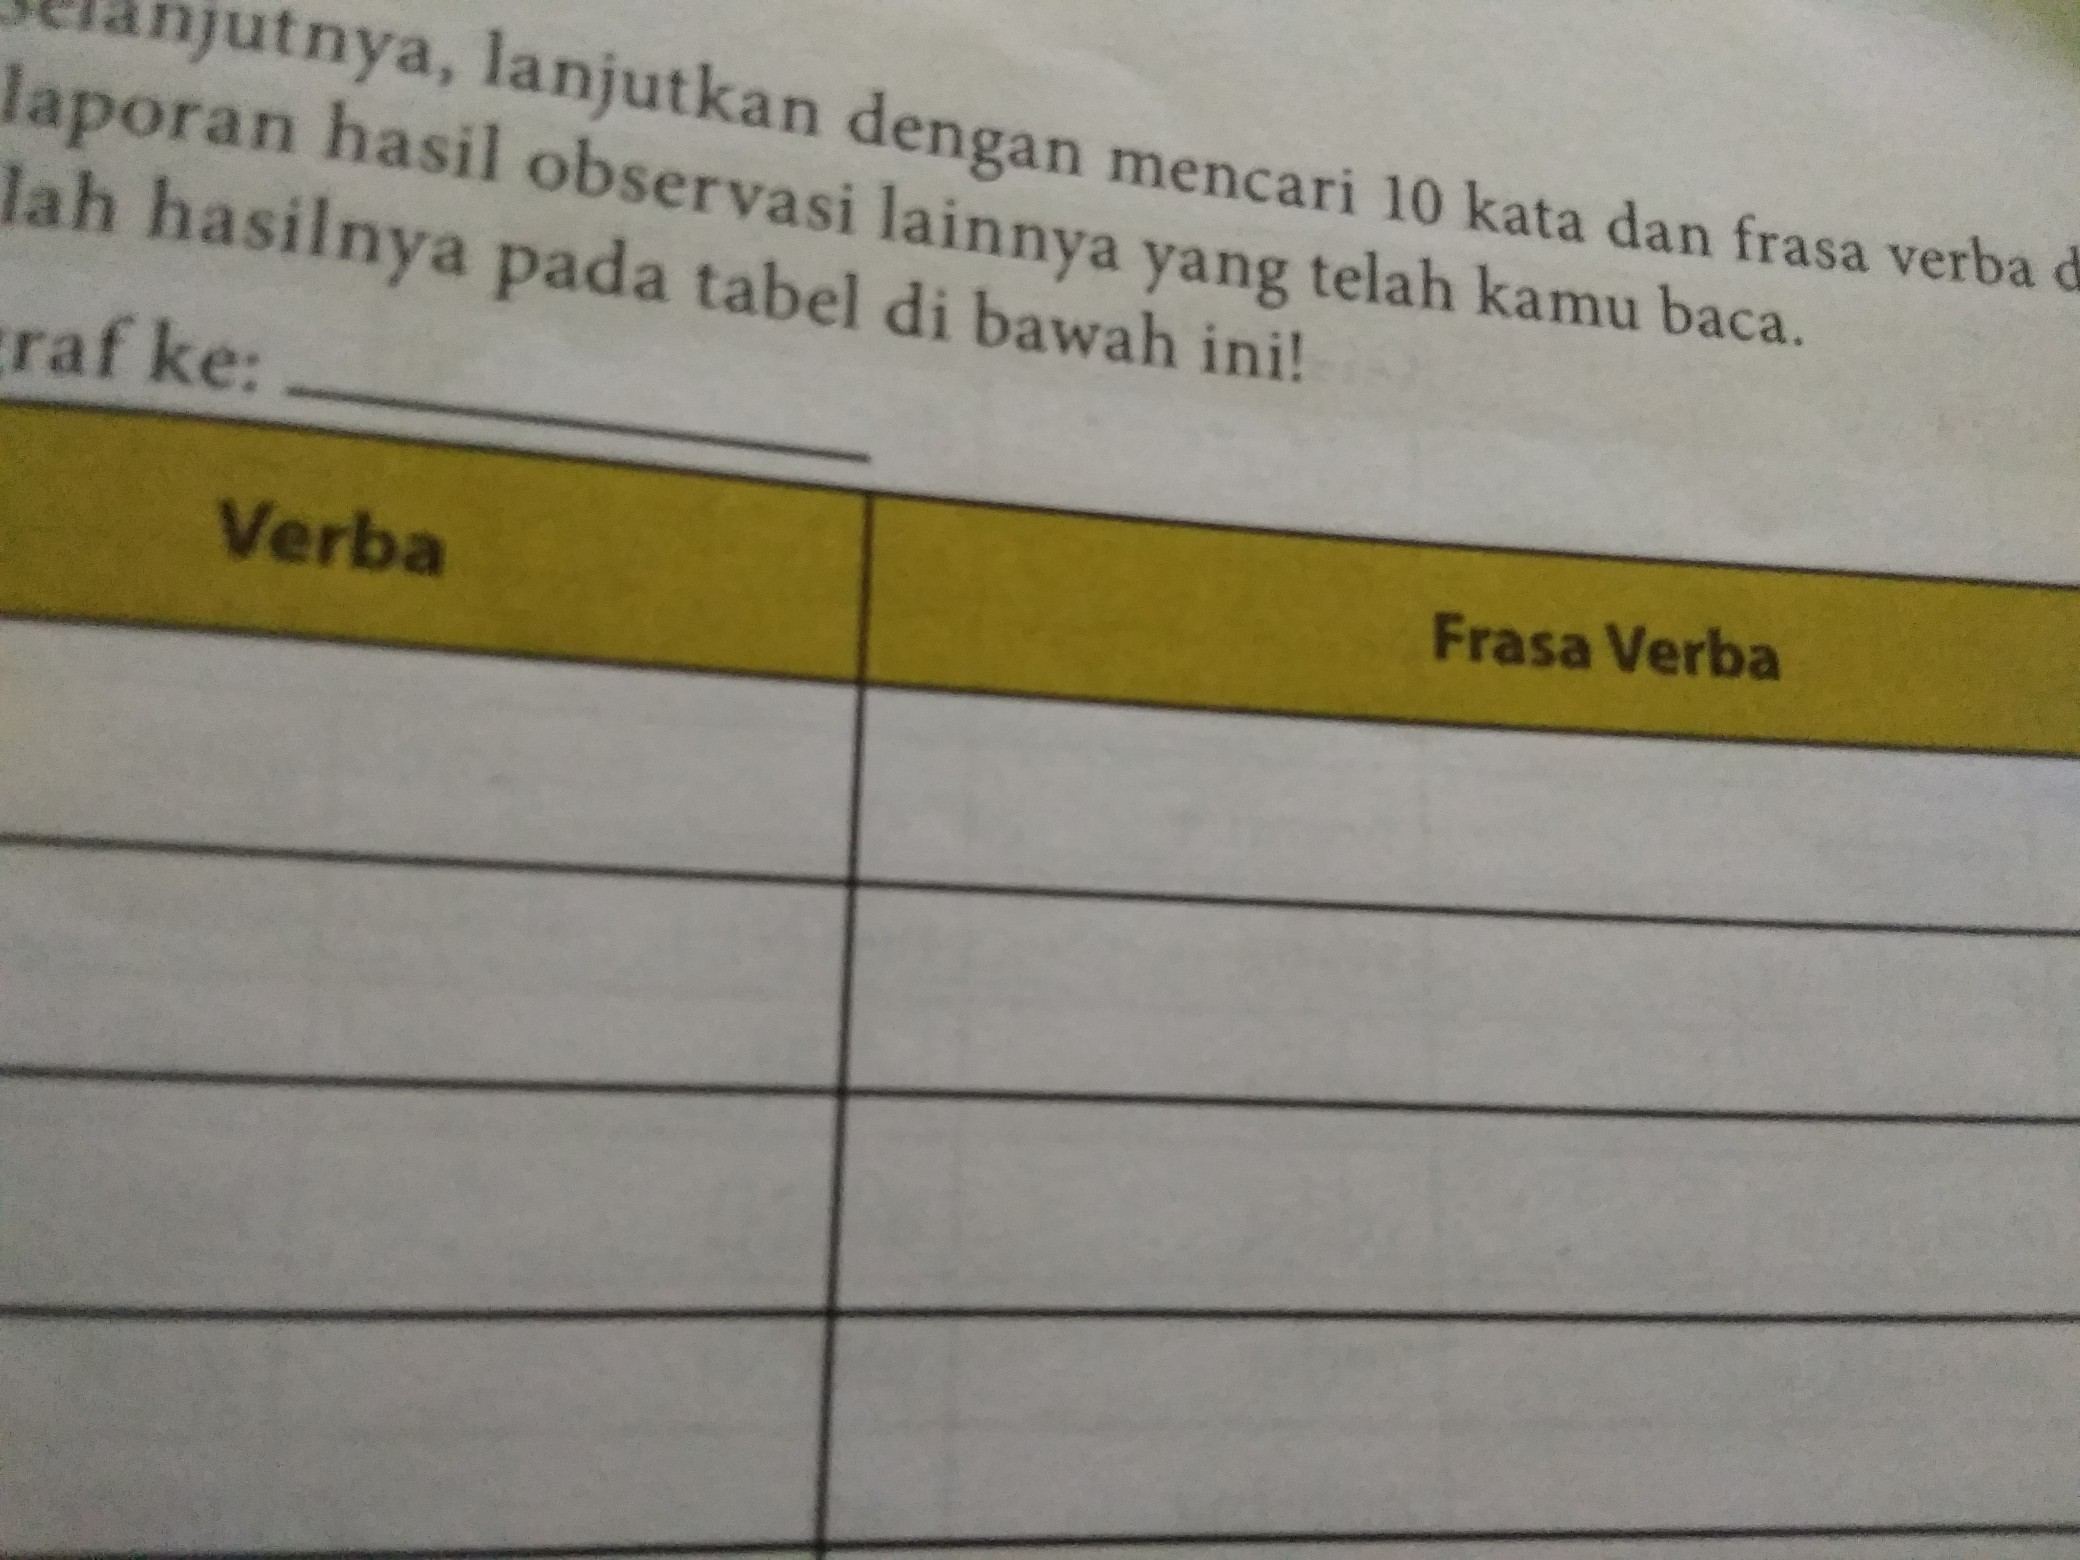 Contoh Verba Dan Frasa Verba Brainly Co Id